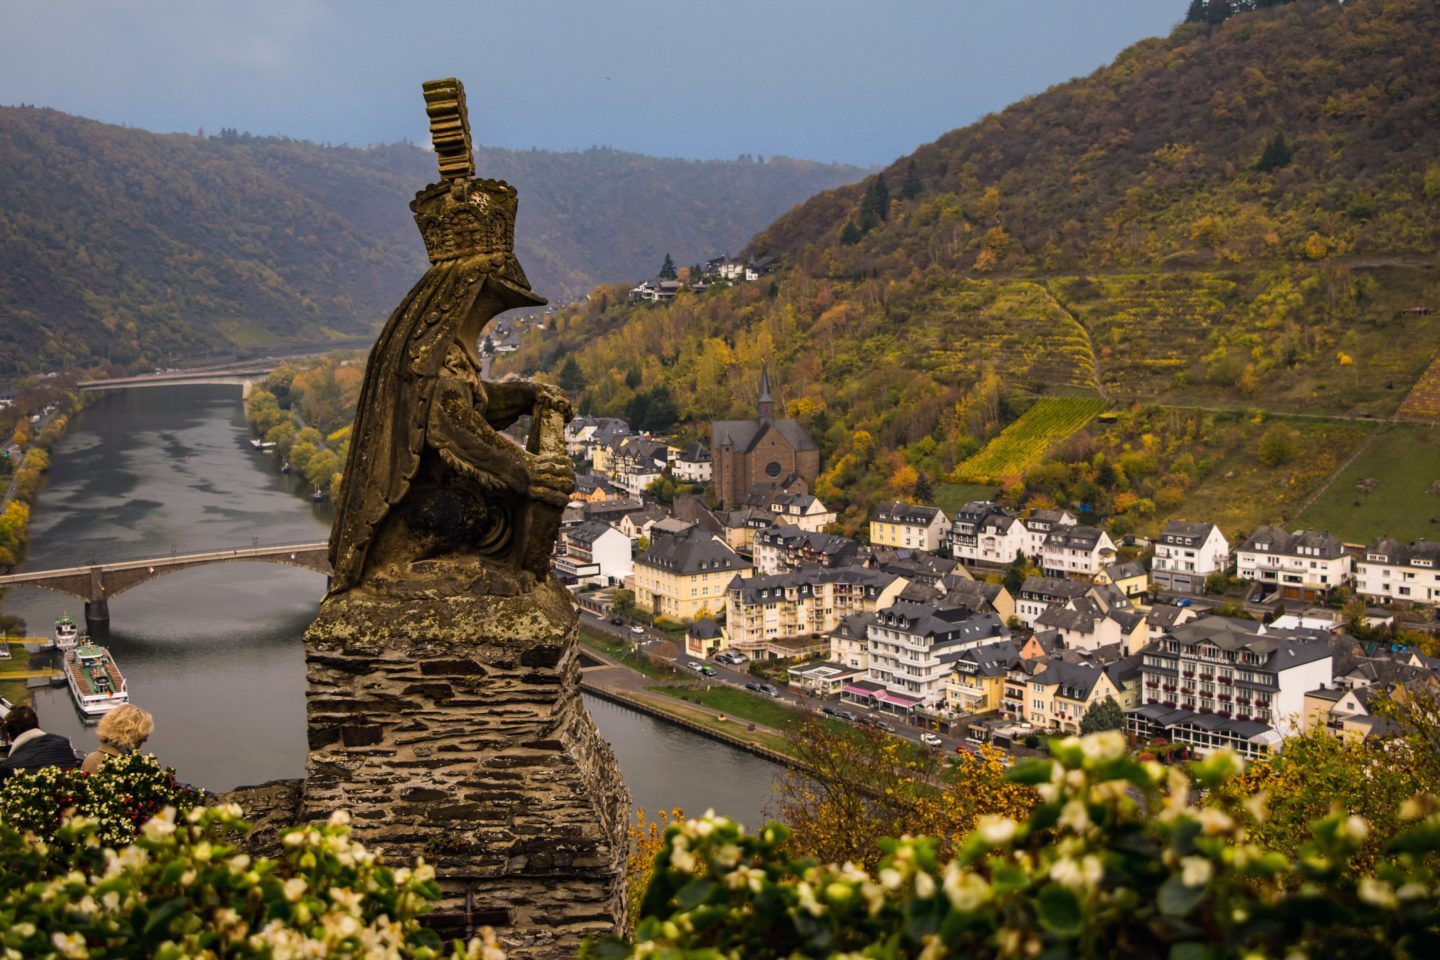 View from outside the Cochem Castle